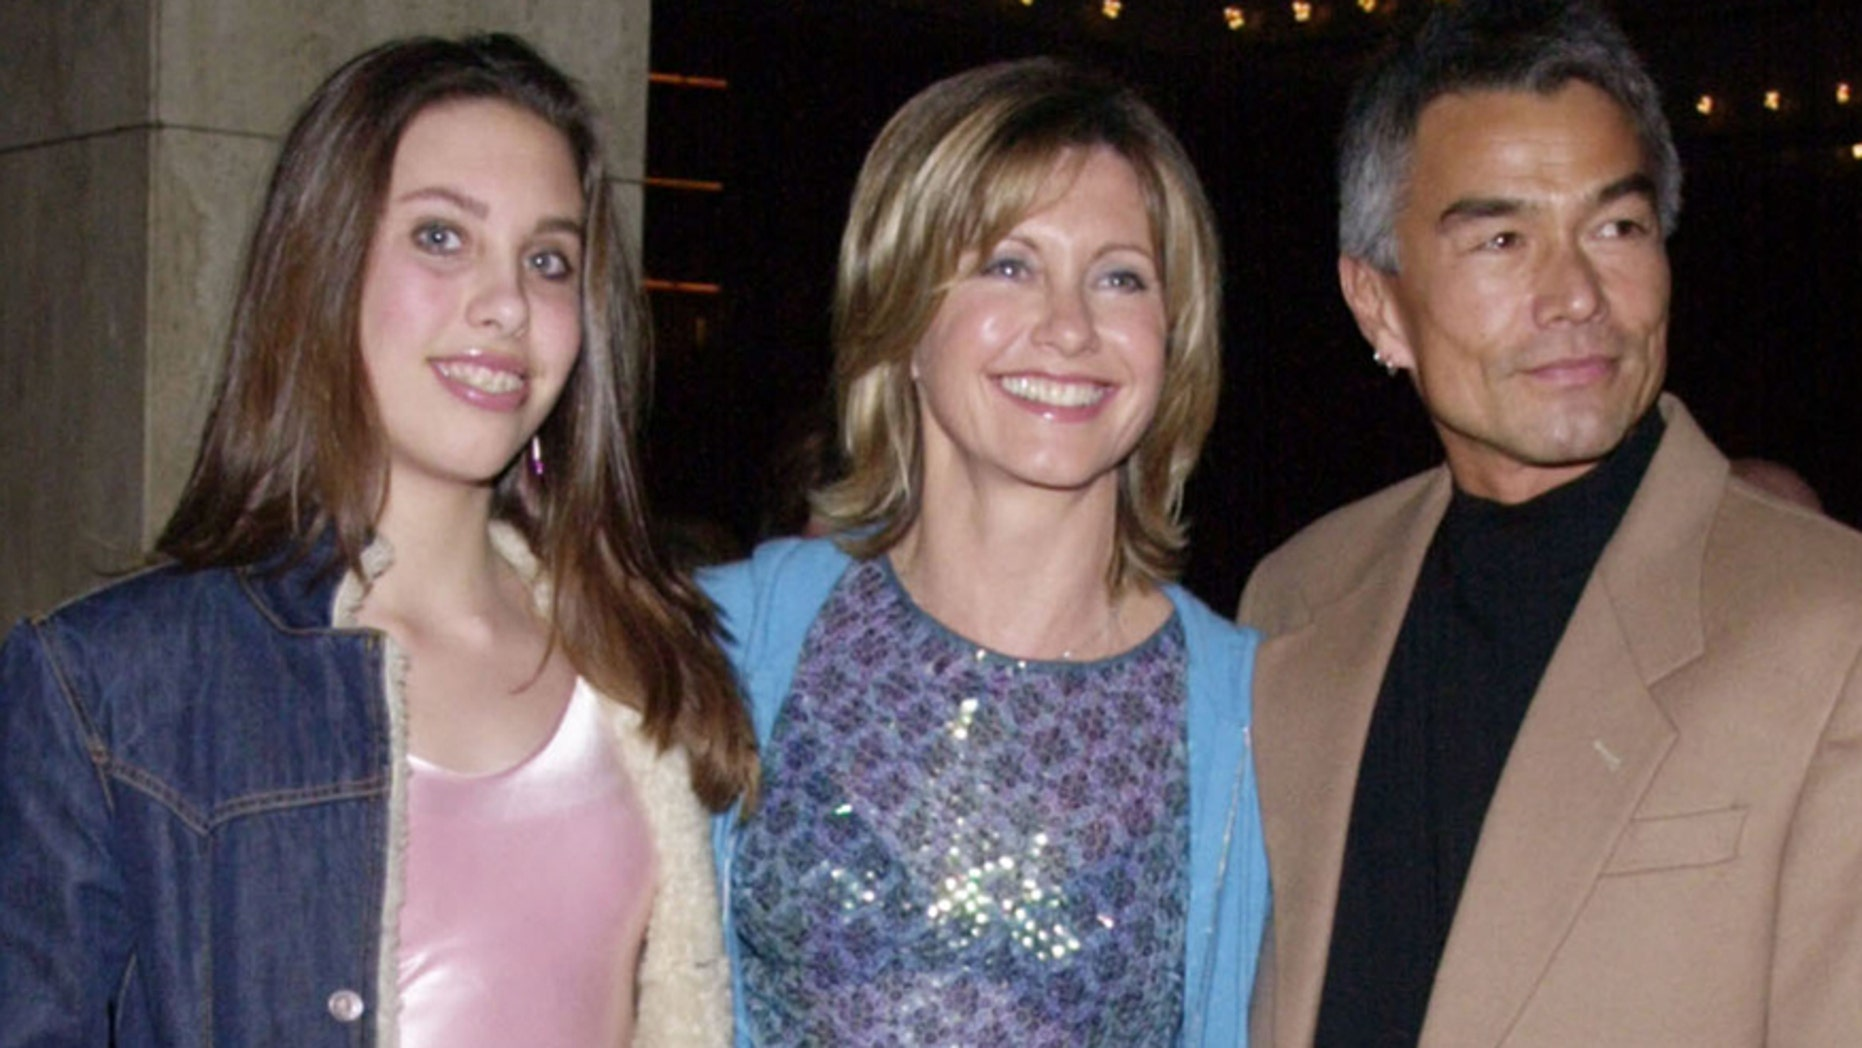 """Singer and actress Olivia Newton-John (C) poses with her daughter Chloe and Patrick McDermott upon arriving February 26, 2001 for the opening night of """"Mamma Mia!"""" at the Los Angeles Shubert Theatre. REUTERS"""